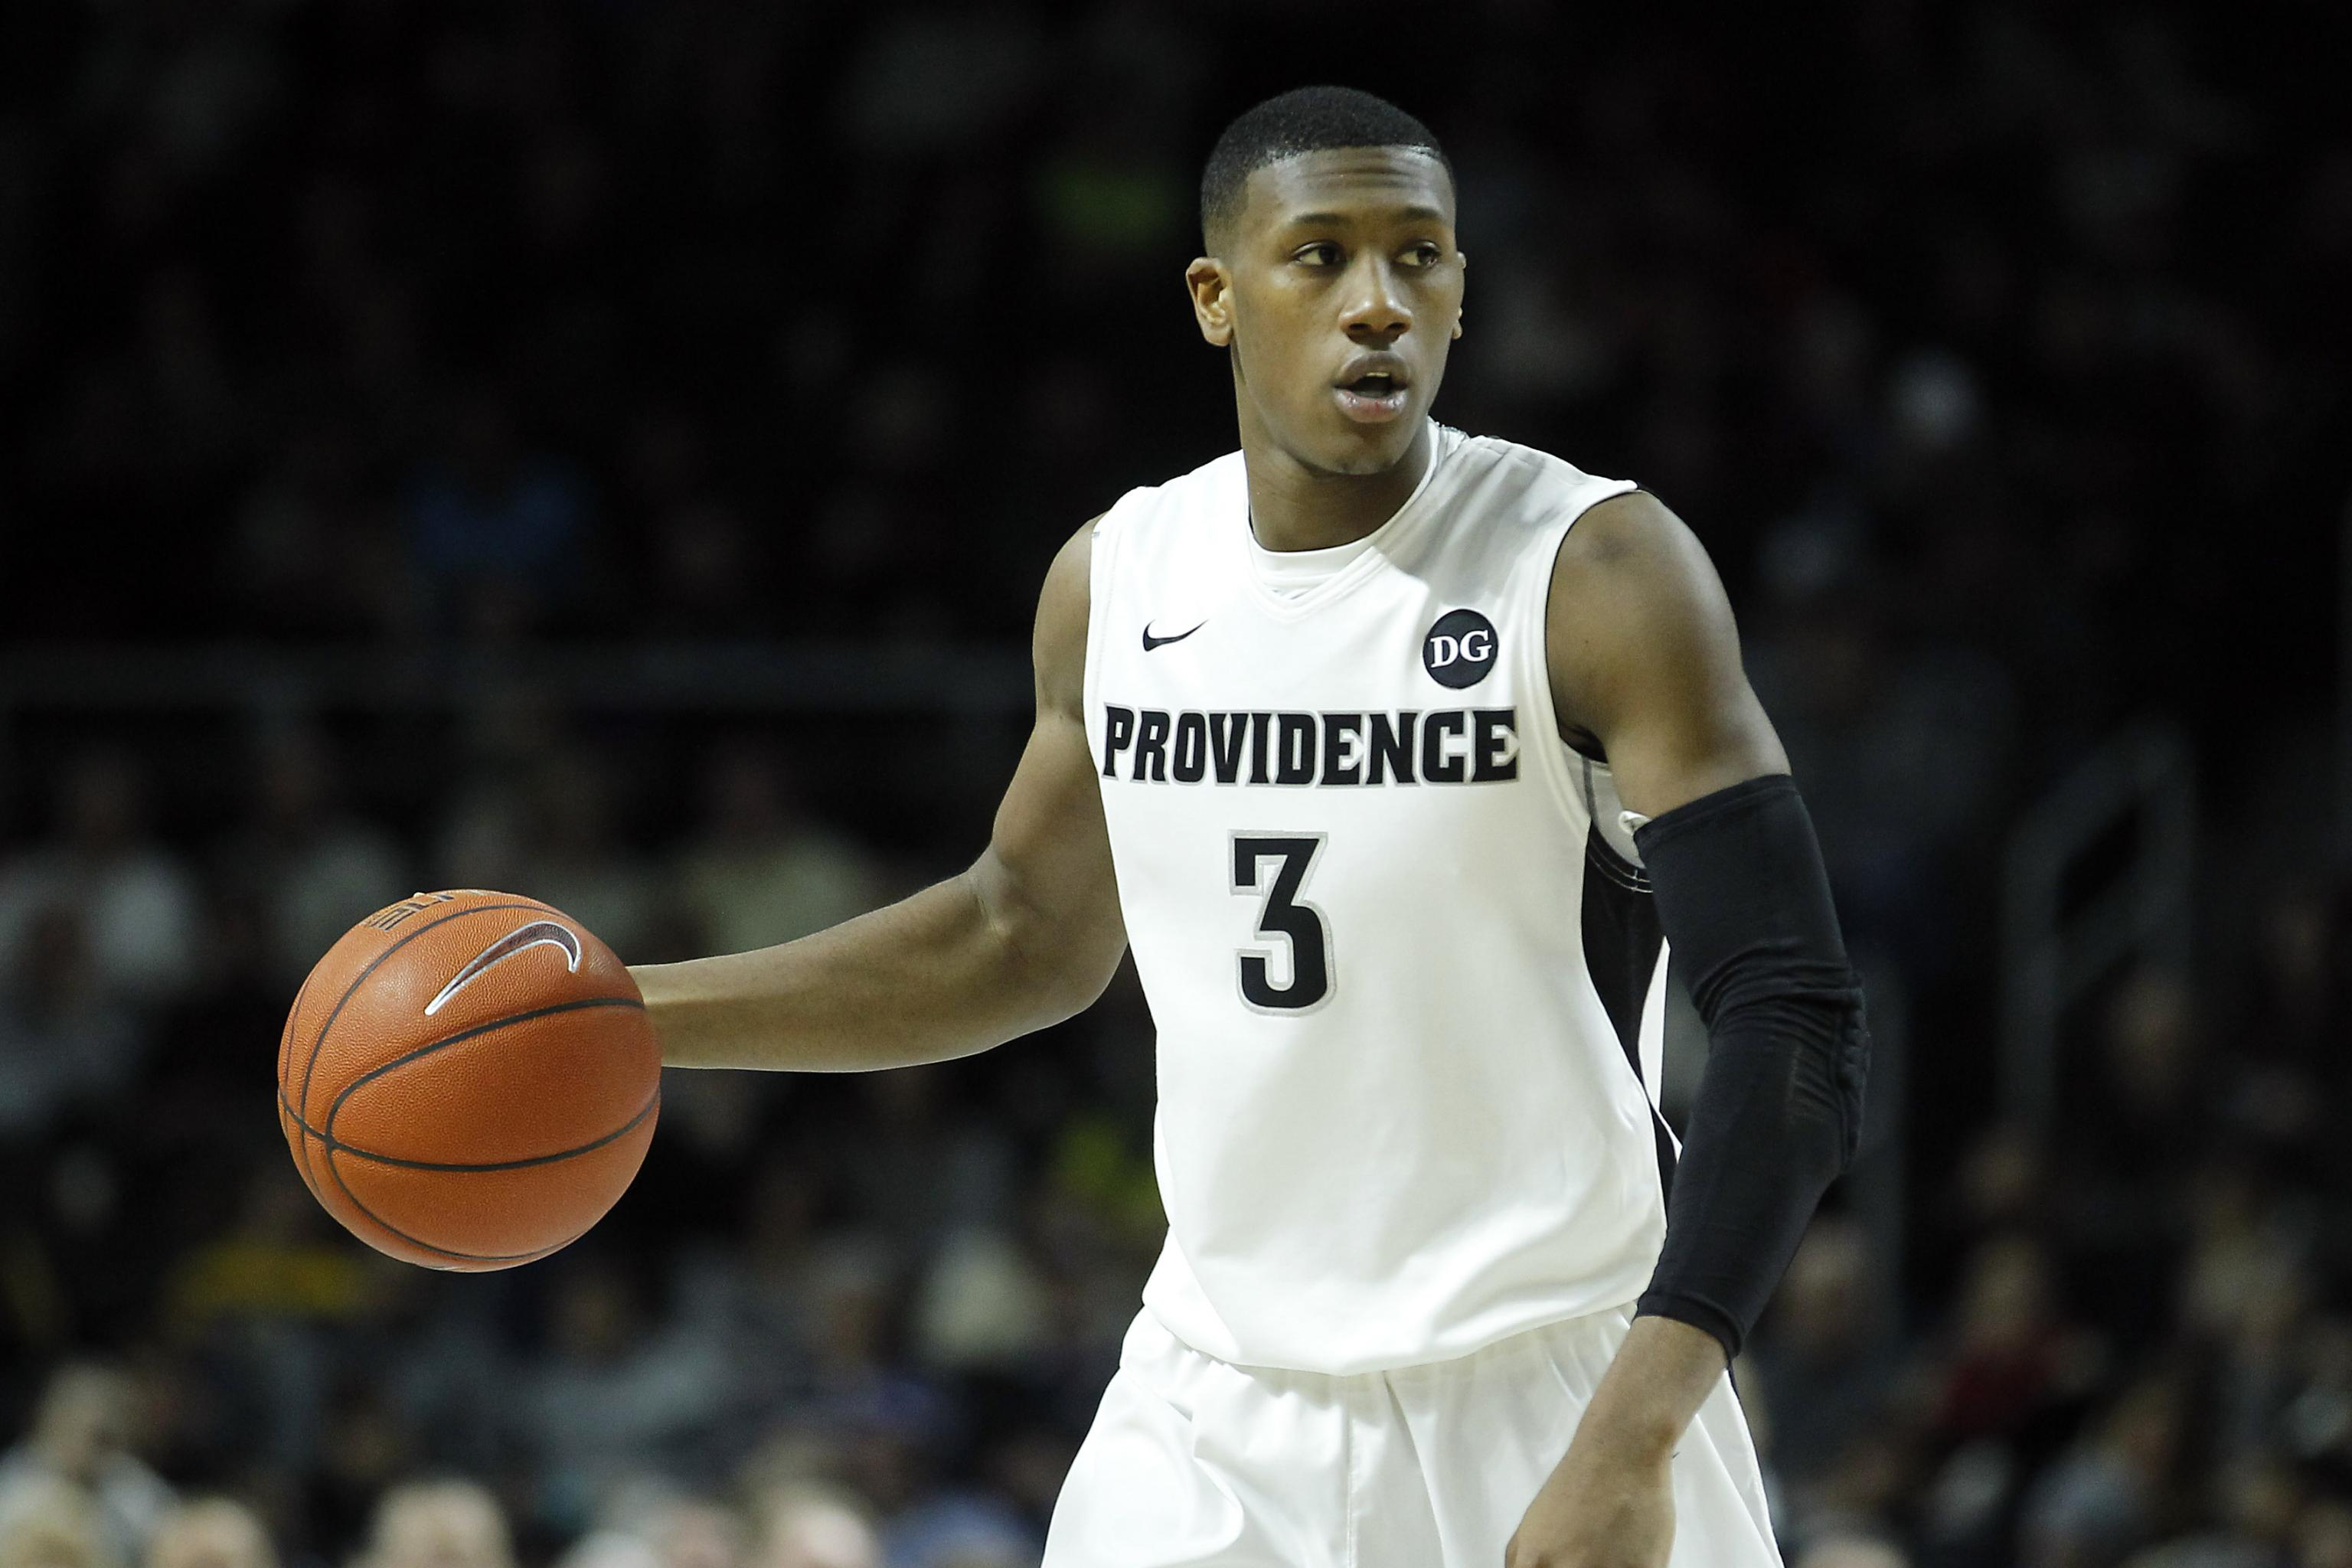 reputable site 9dc6e 09b9b Providence's Kris Dunn Making Risky Decision to Pass on 2015 ...